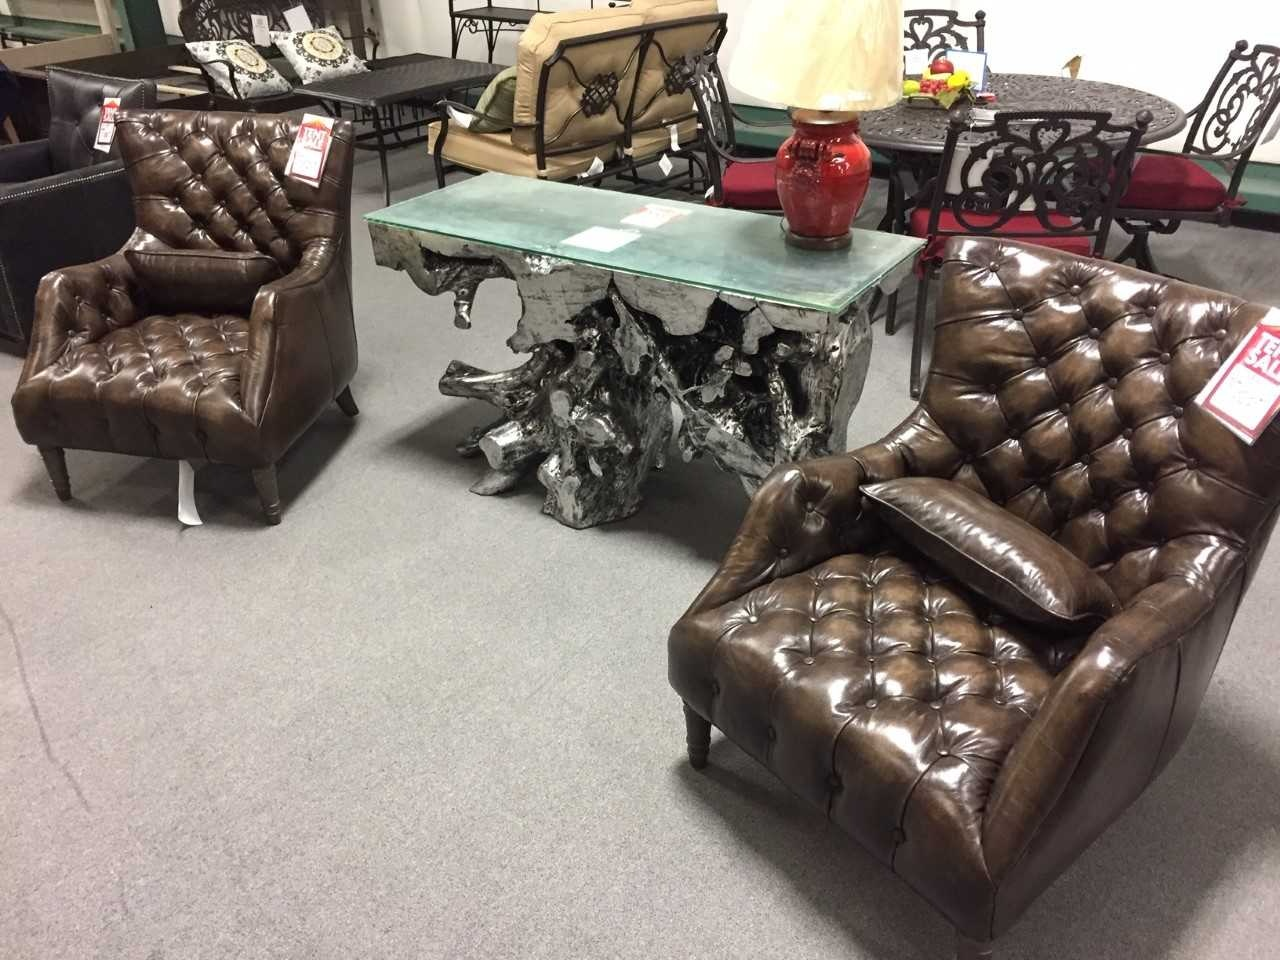 Back room tufted leather chair by hooker furniture 25 at maynards home furnishings